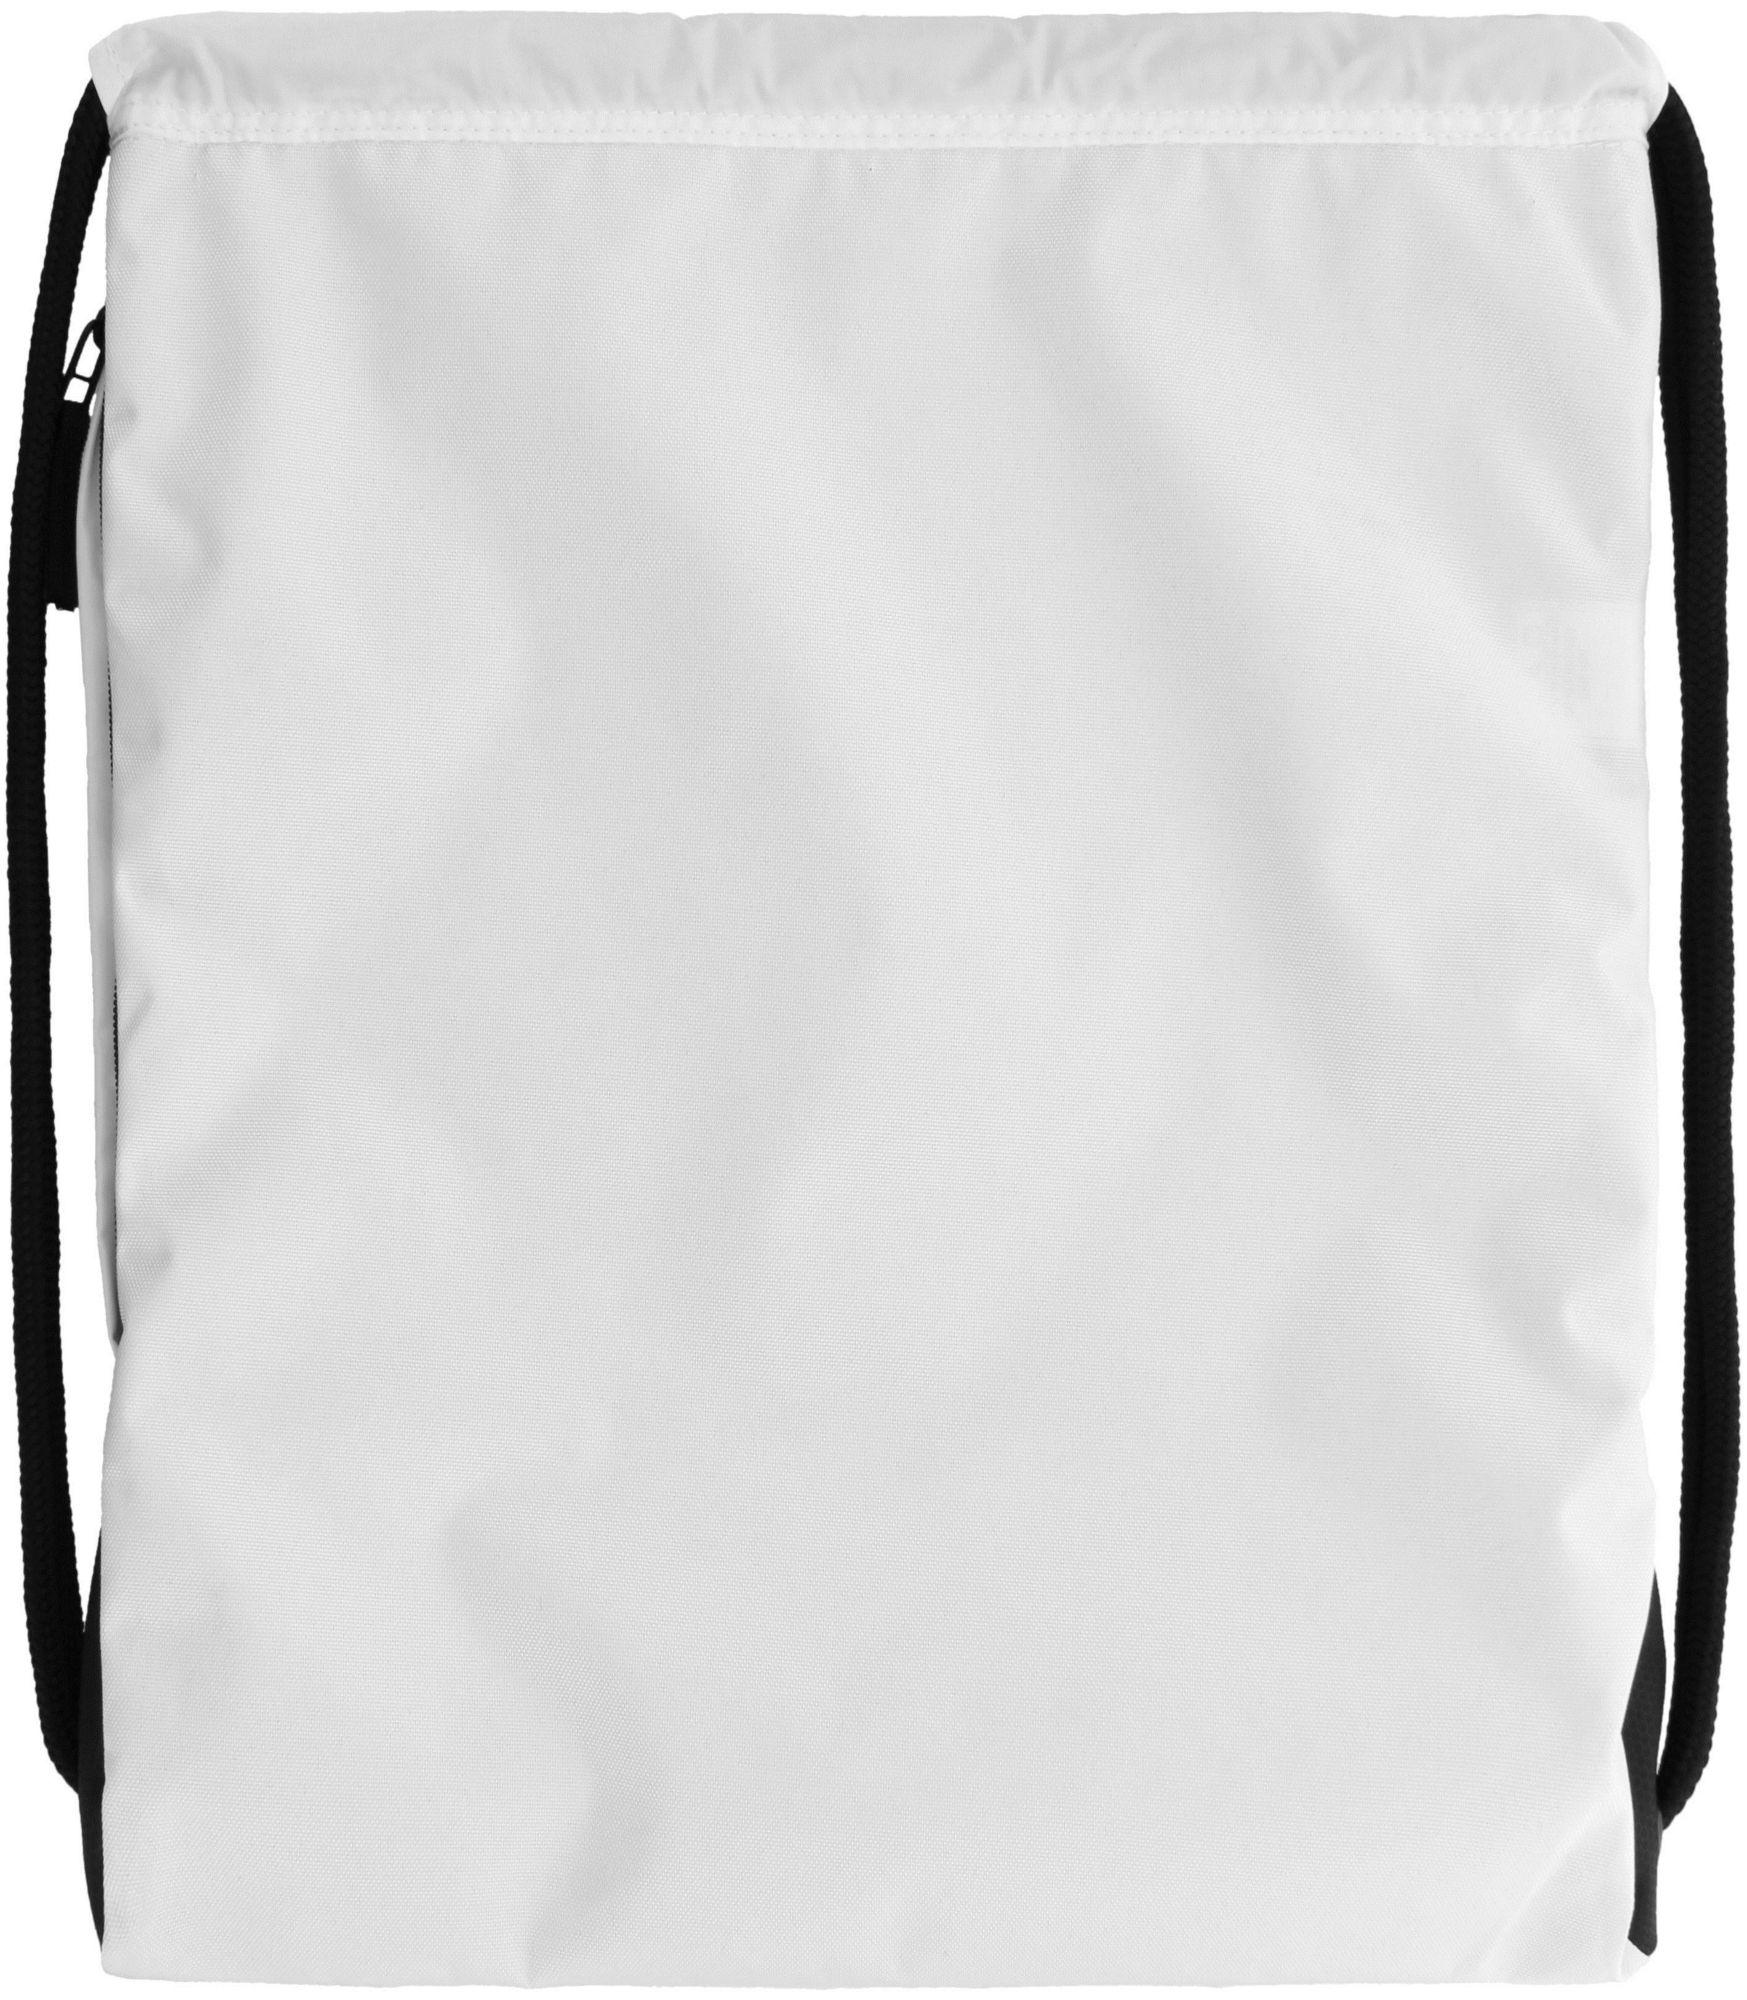 Adidas - White Originals Trefoil Sackpack for Men - Lyst. View fullscreen cd45e0cc2a92a